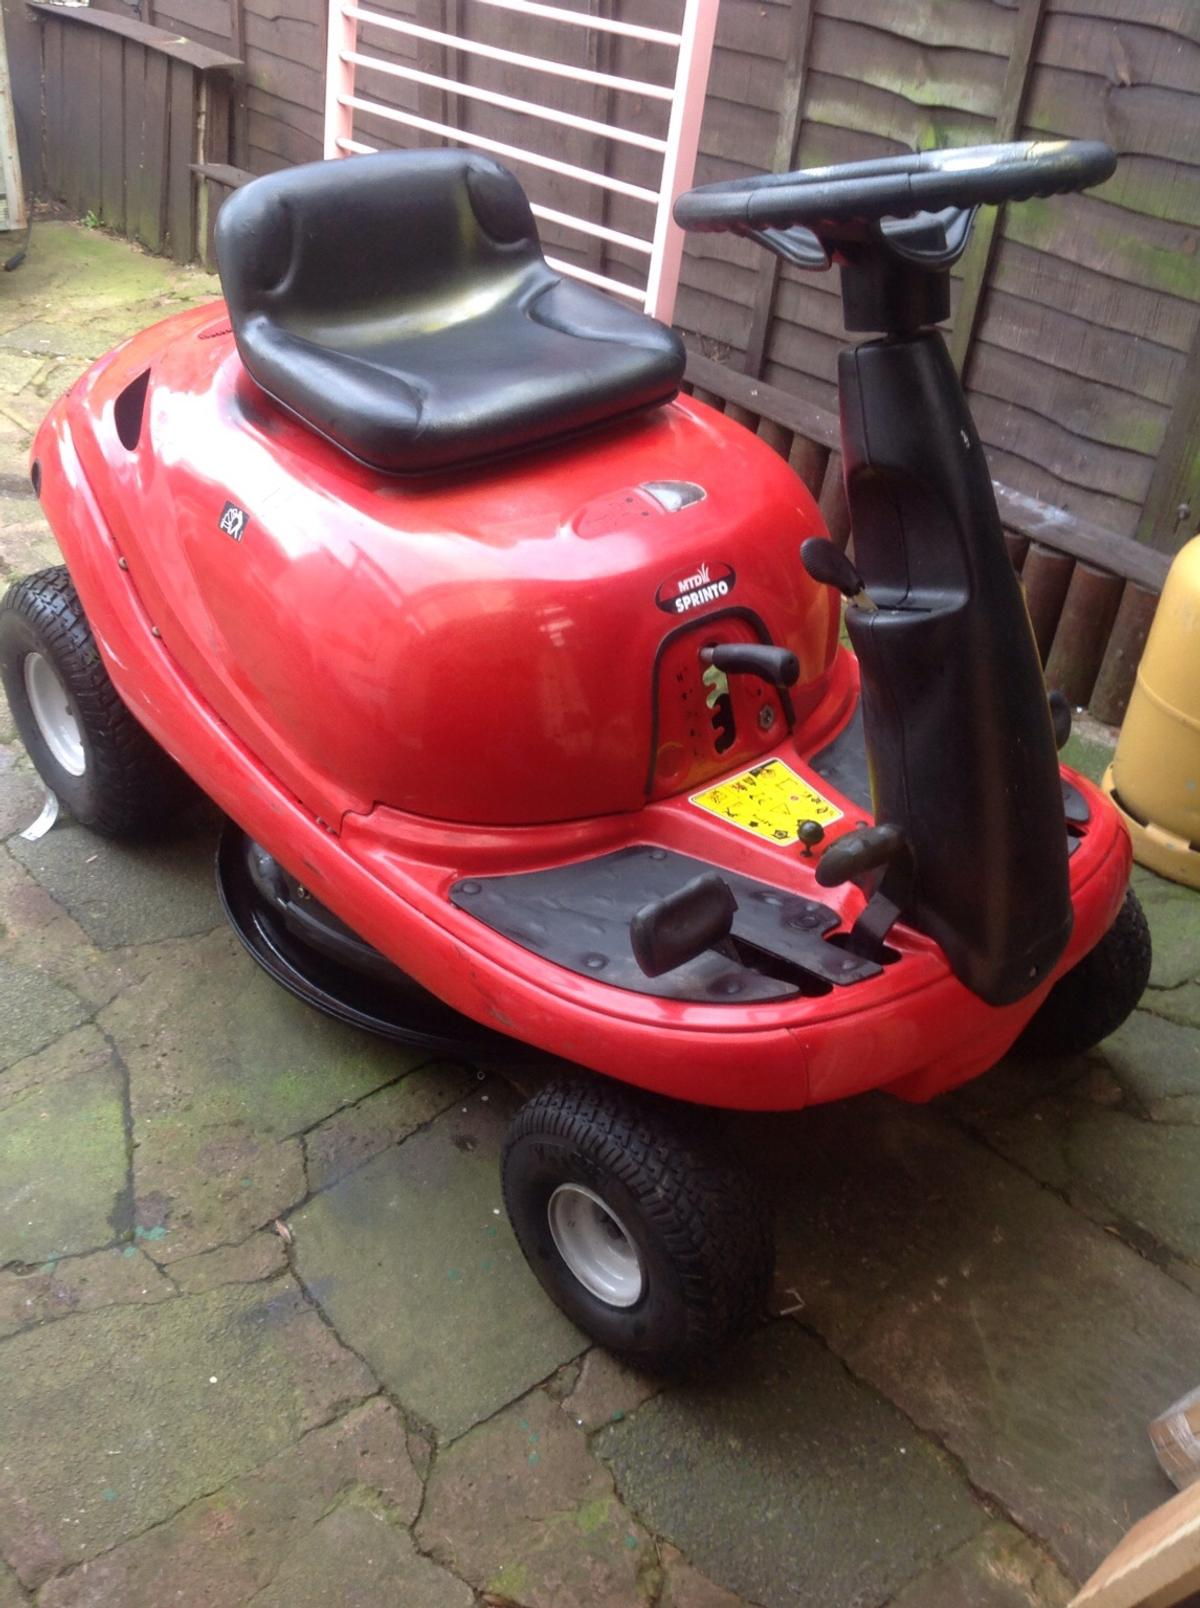 Ride on mower mtd sprinto kawasaki in B44 Birmingham for £375 00 for